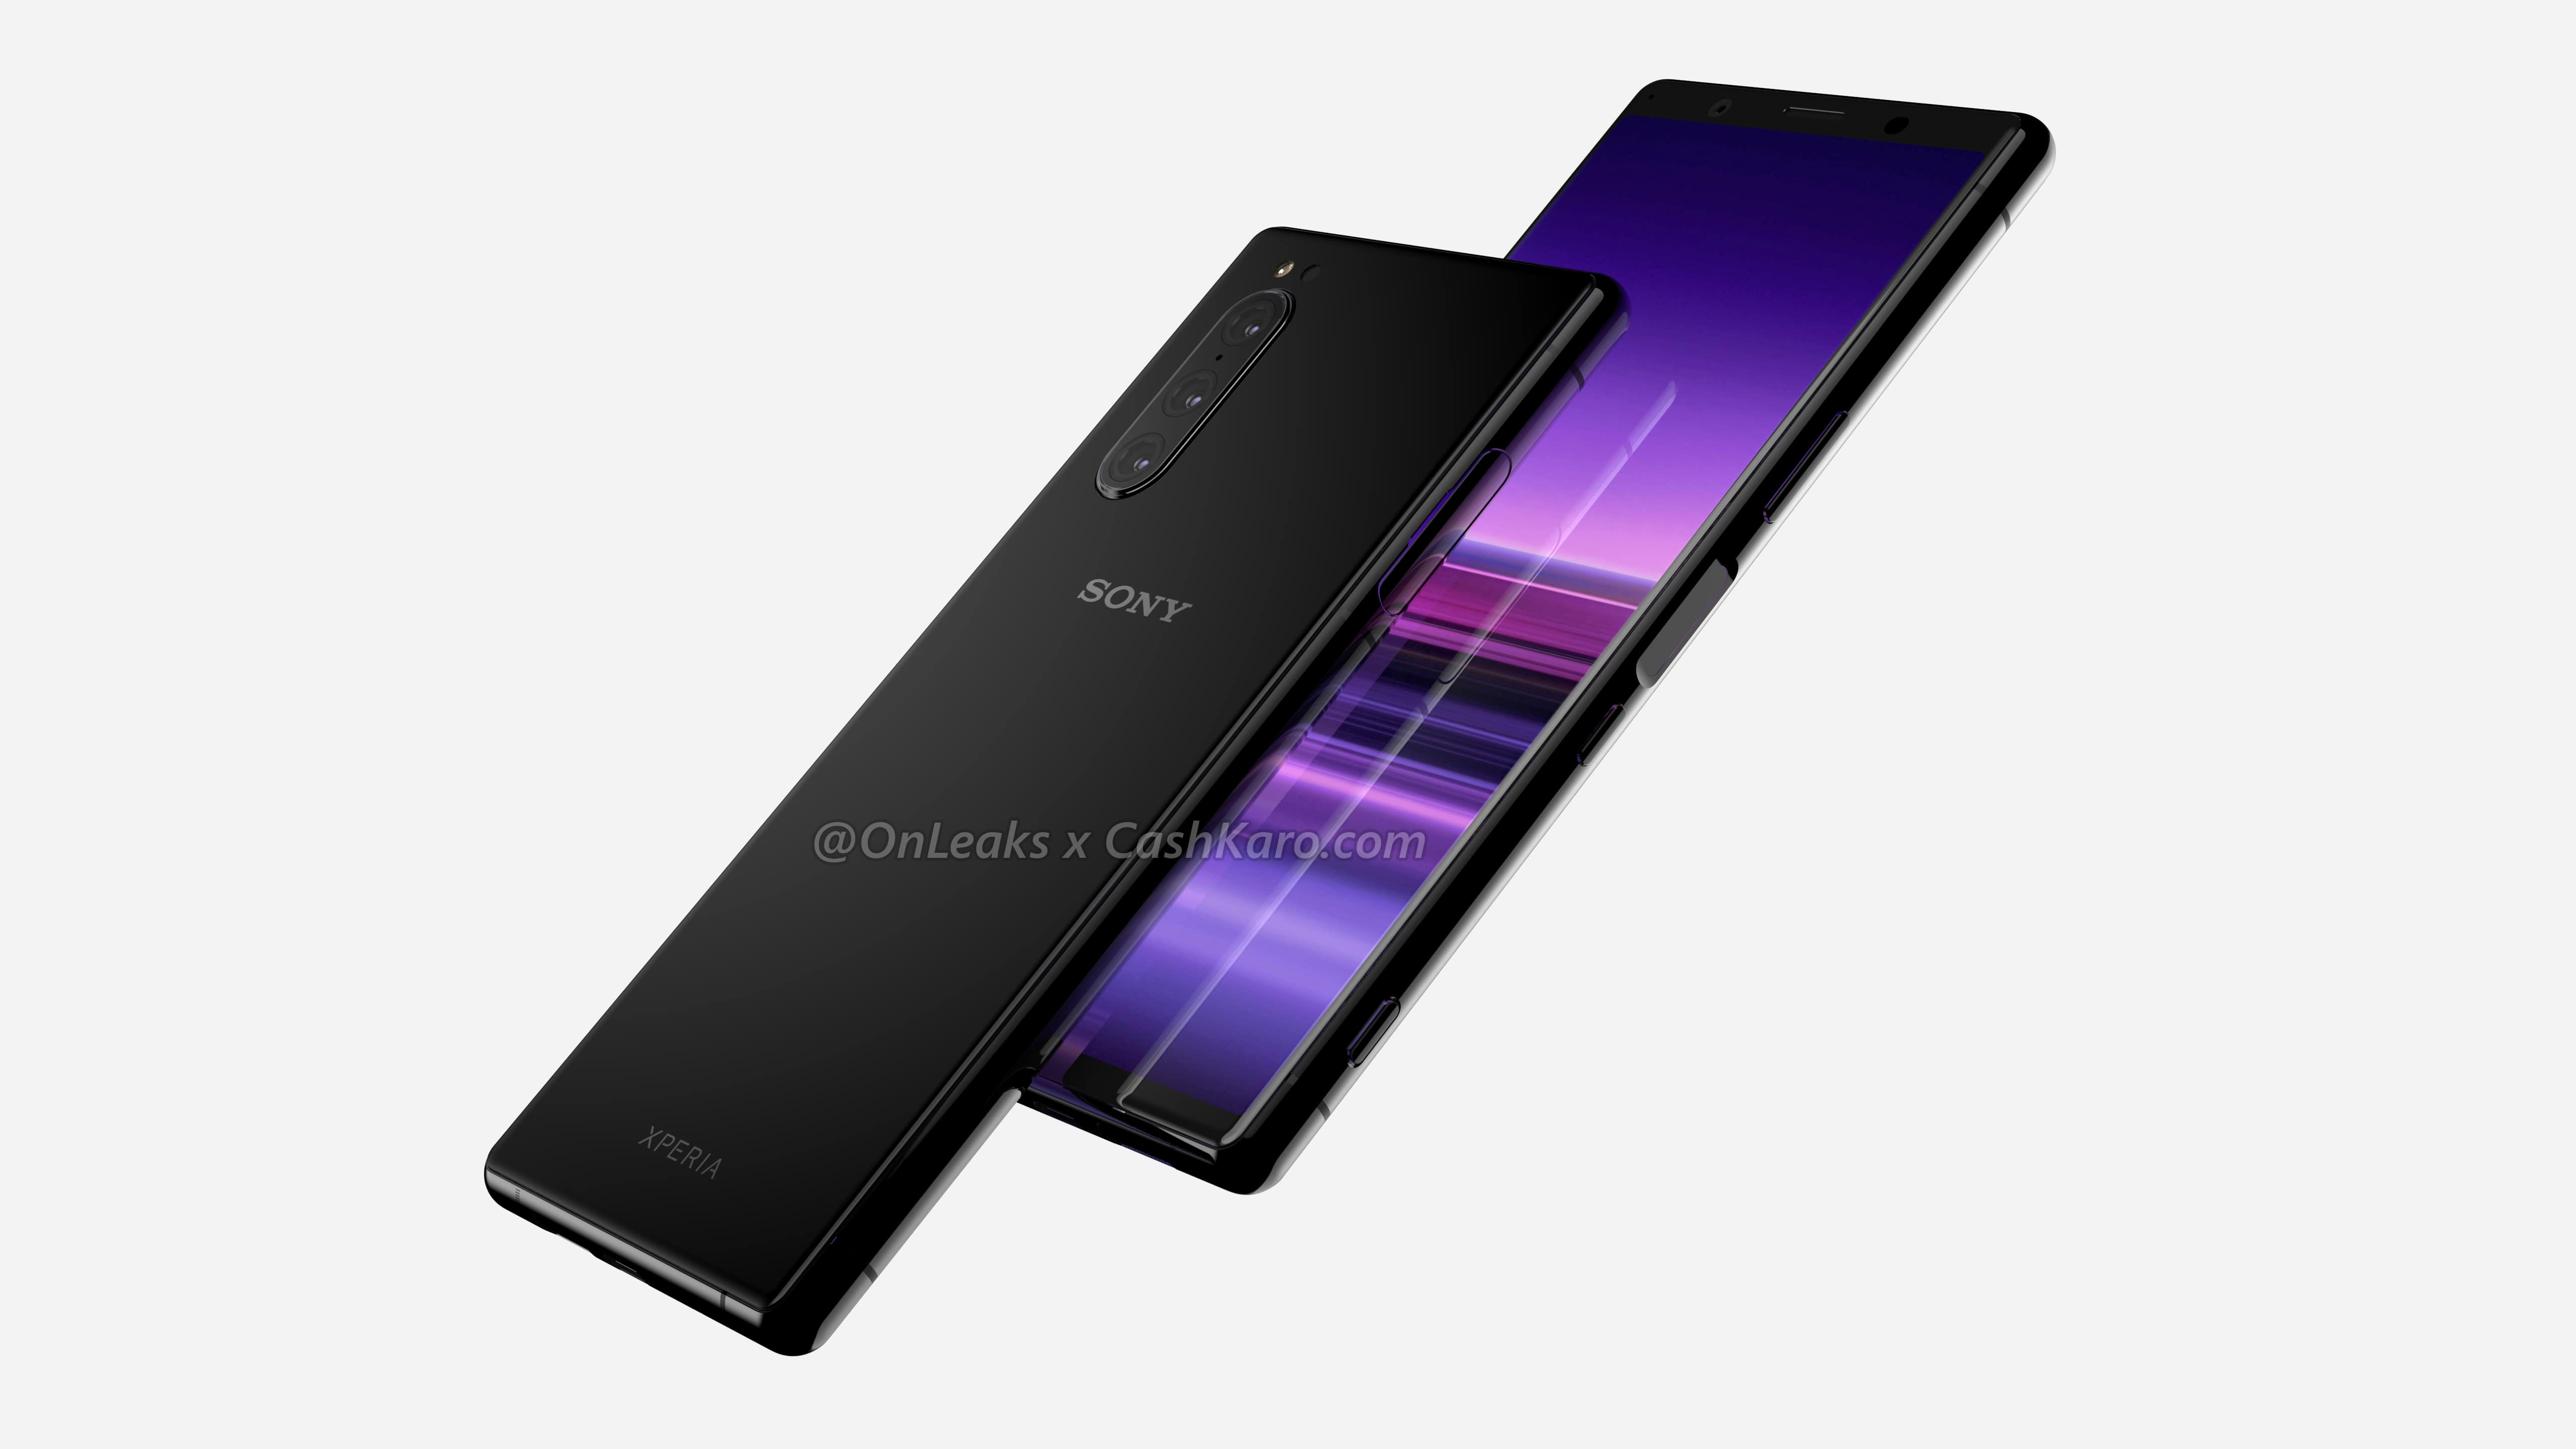 Sony Xperia 1 lands in the U.S. 12th July